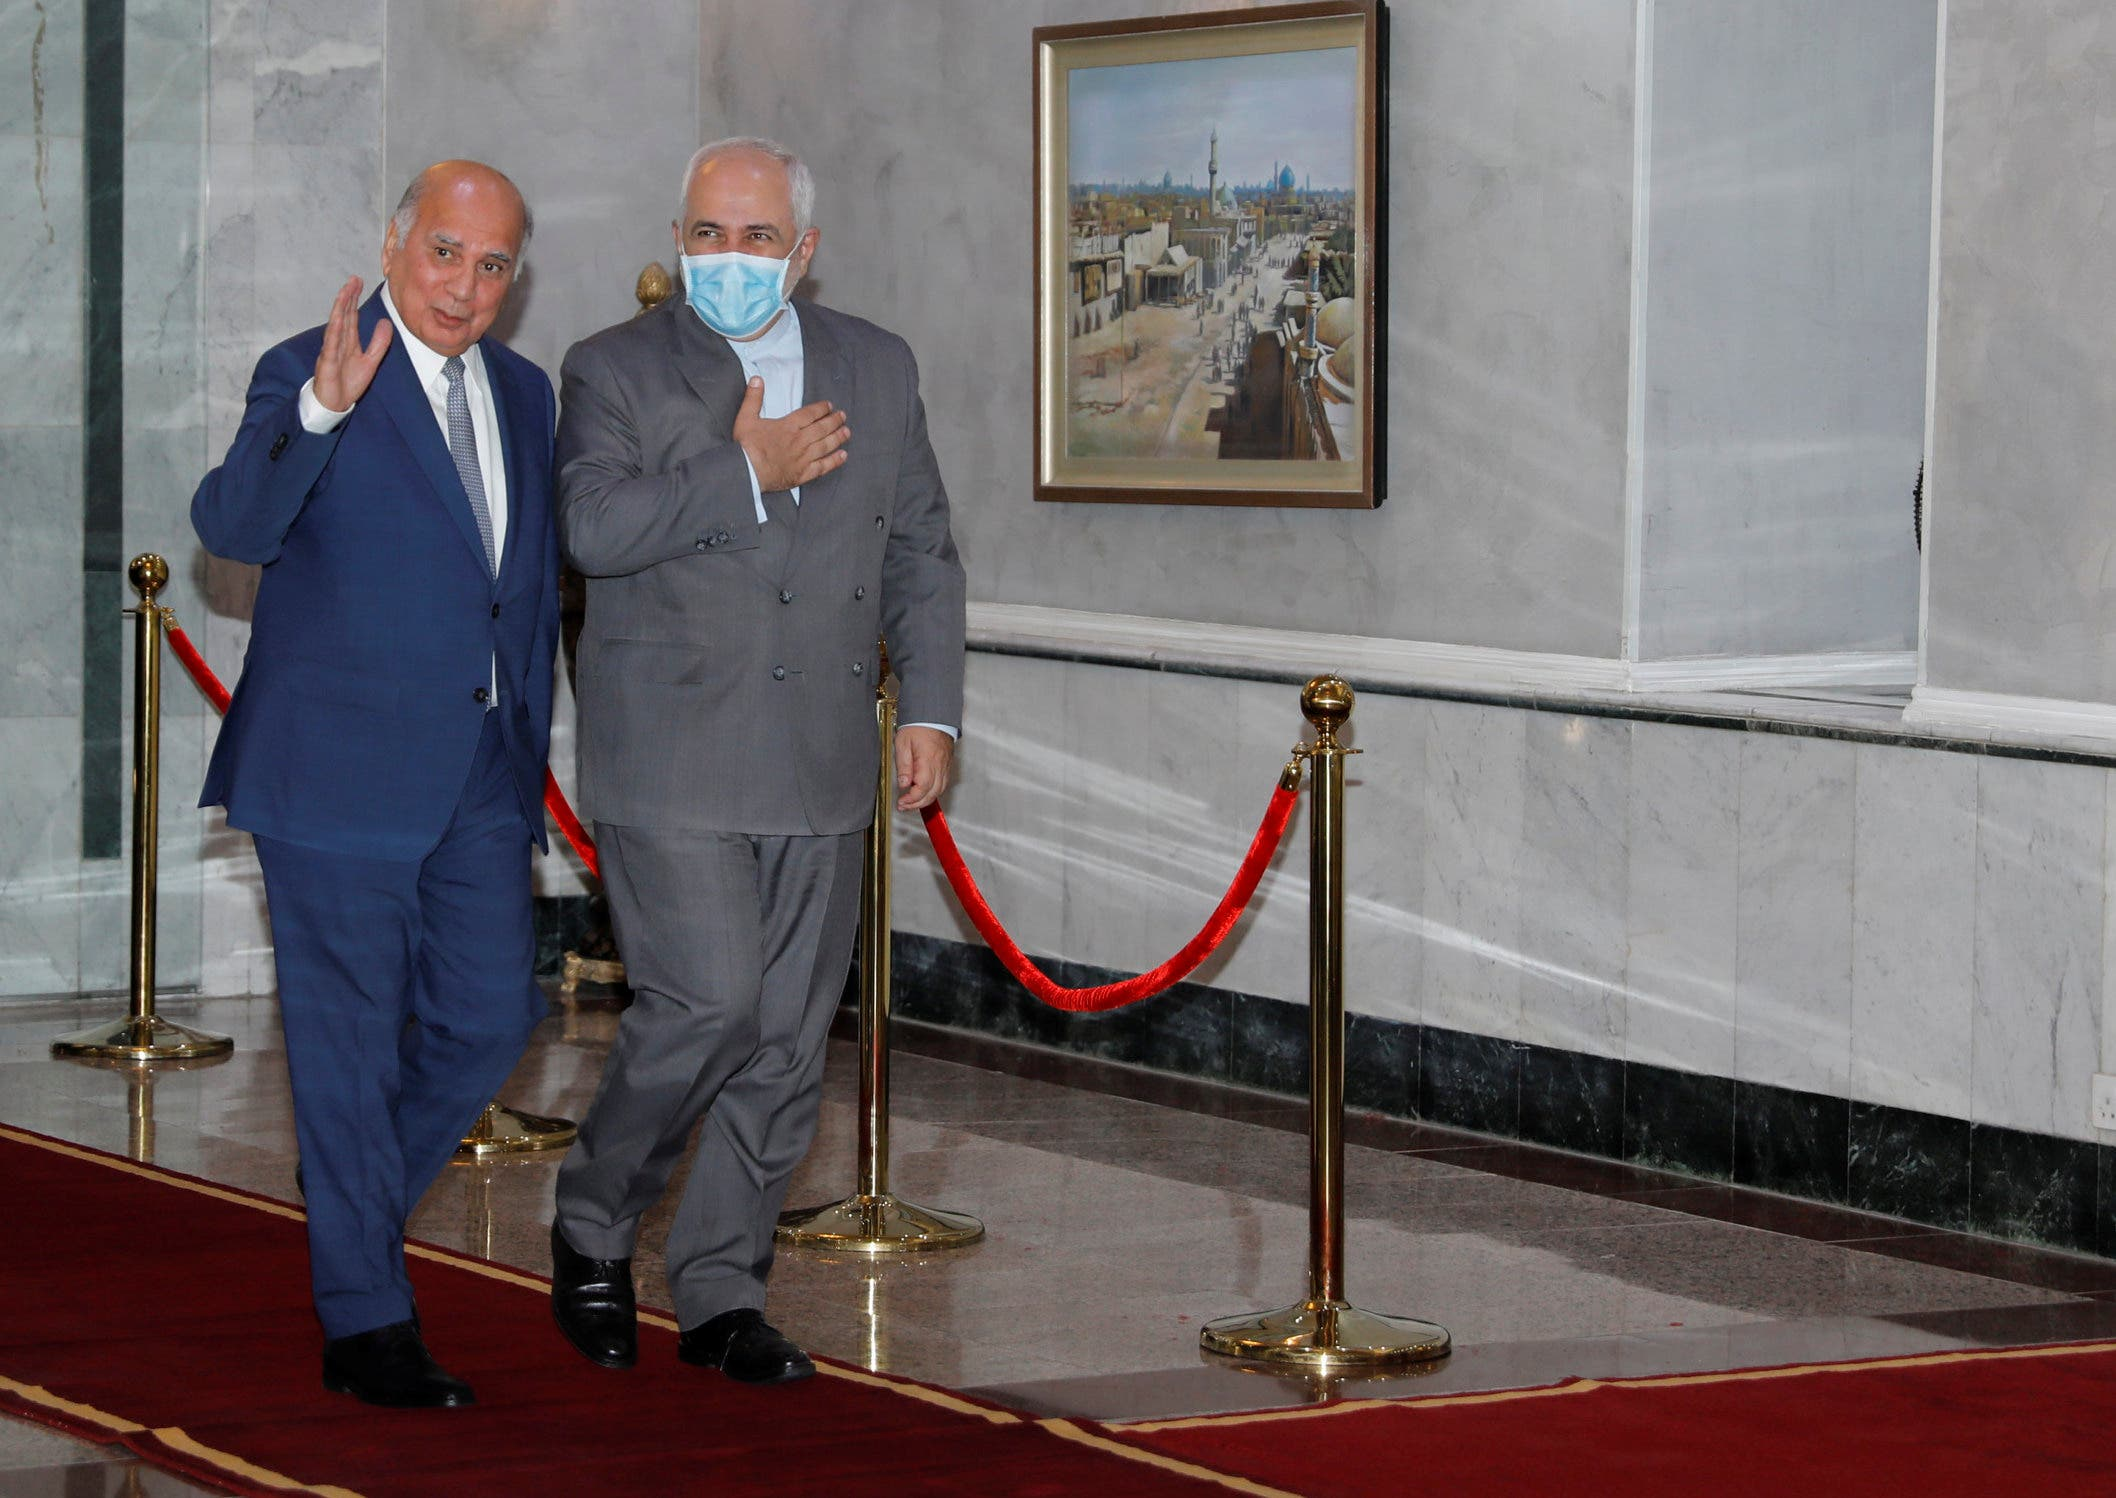 Iran's Foreign Minister Mohammad Javad Zarif walks with Iraqi Foreign Affairs Minister Fuad Hussain in Baghdad, Iraq, July 19, 2020. (Reuters)